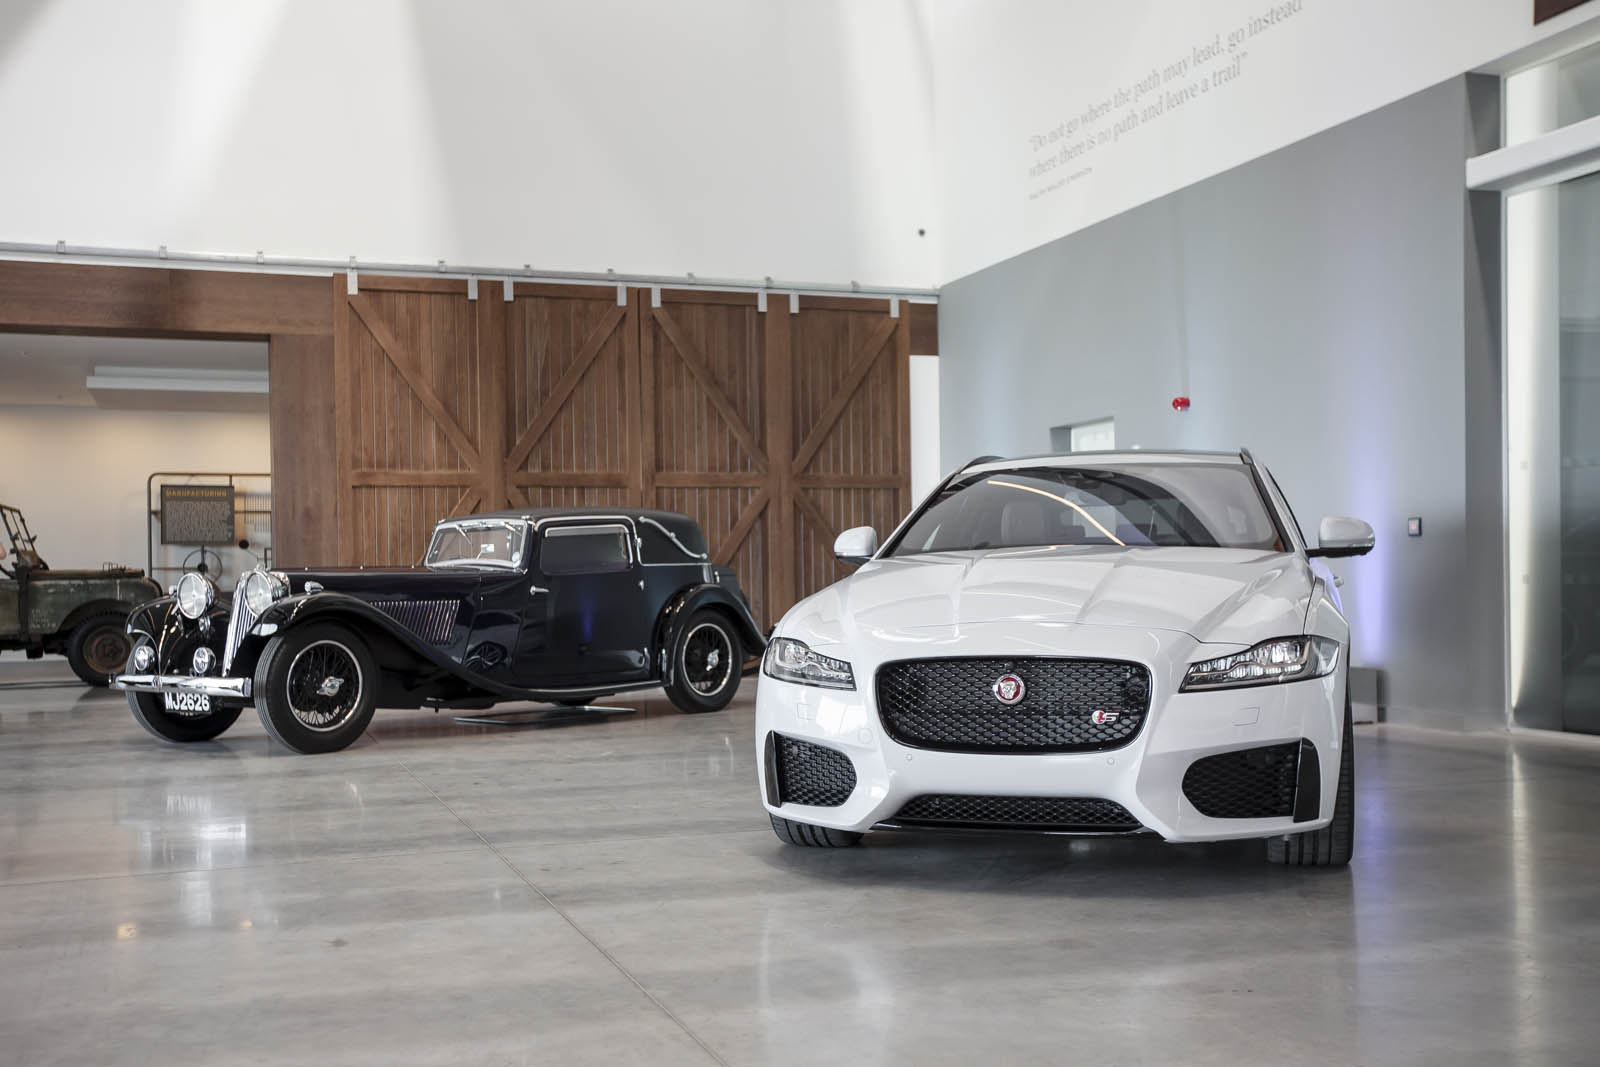 Jaguar_Land_Rover_Classic_Car_Center_03